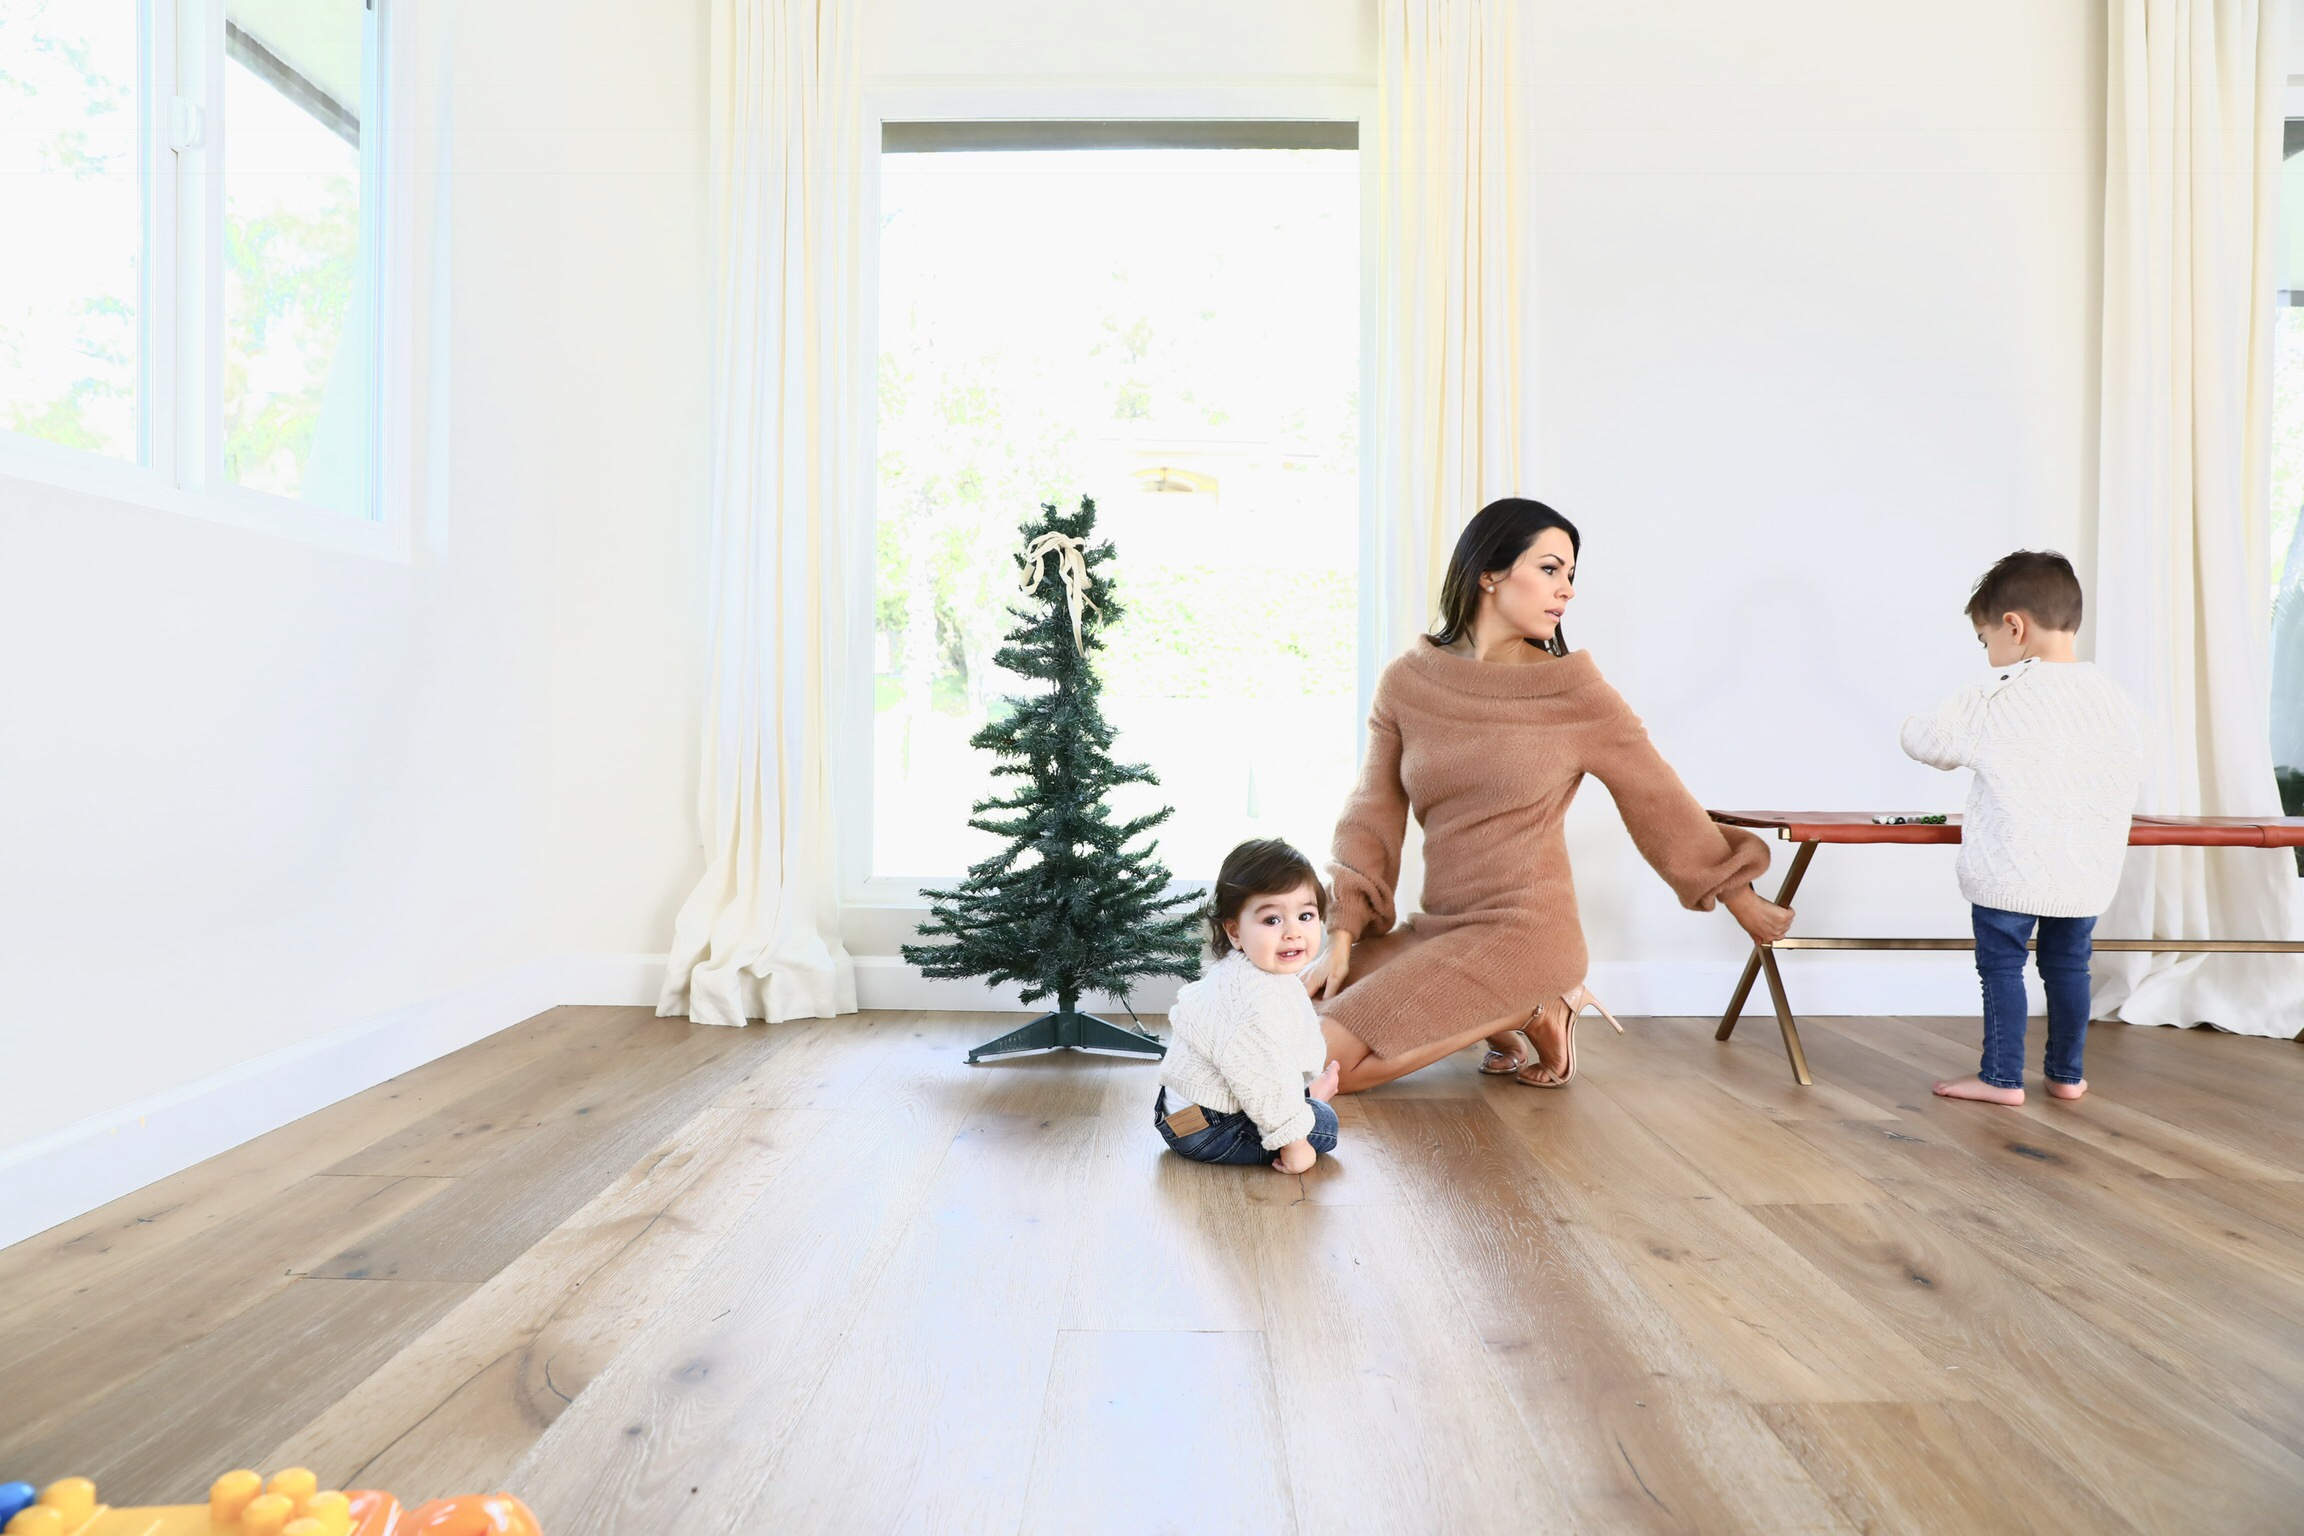 holiday-photos-with-toddlers-002.jpg